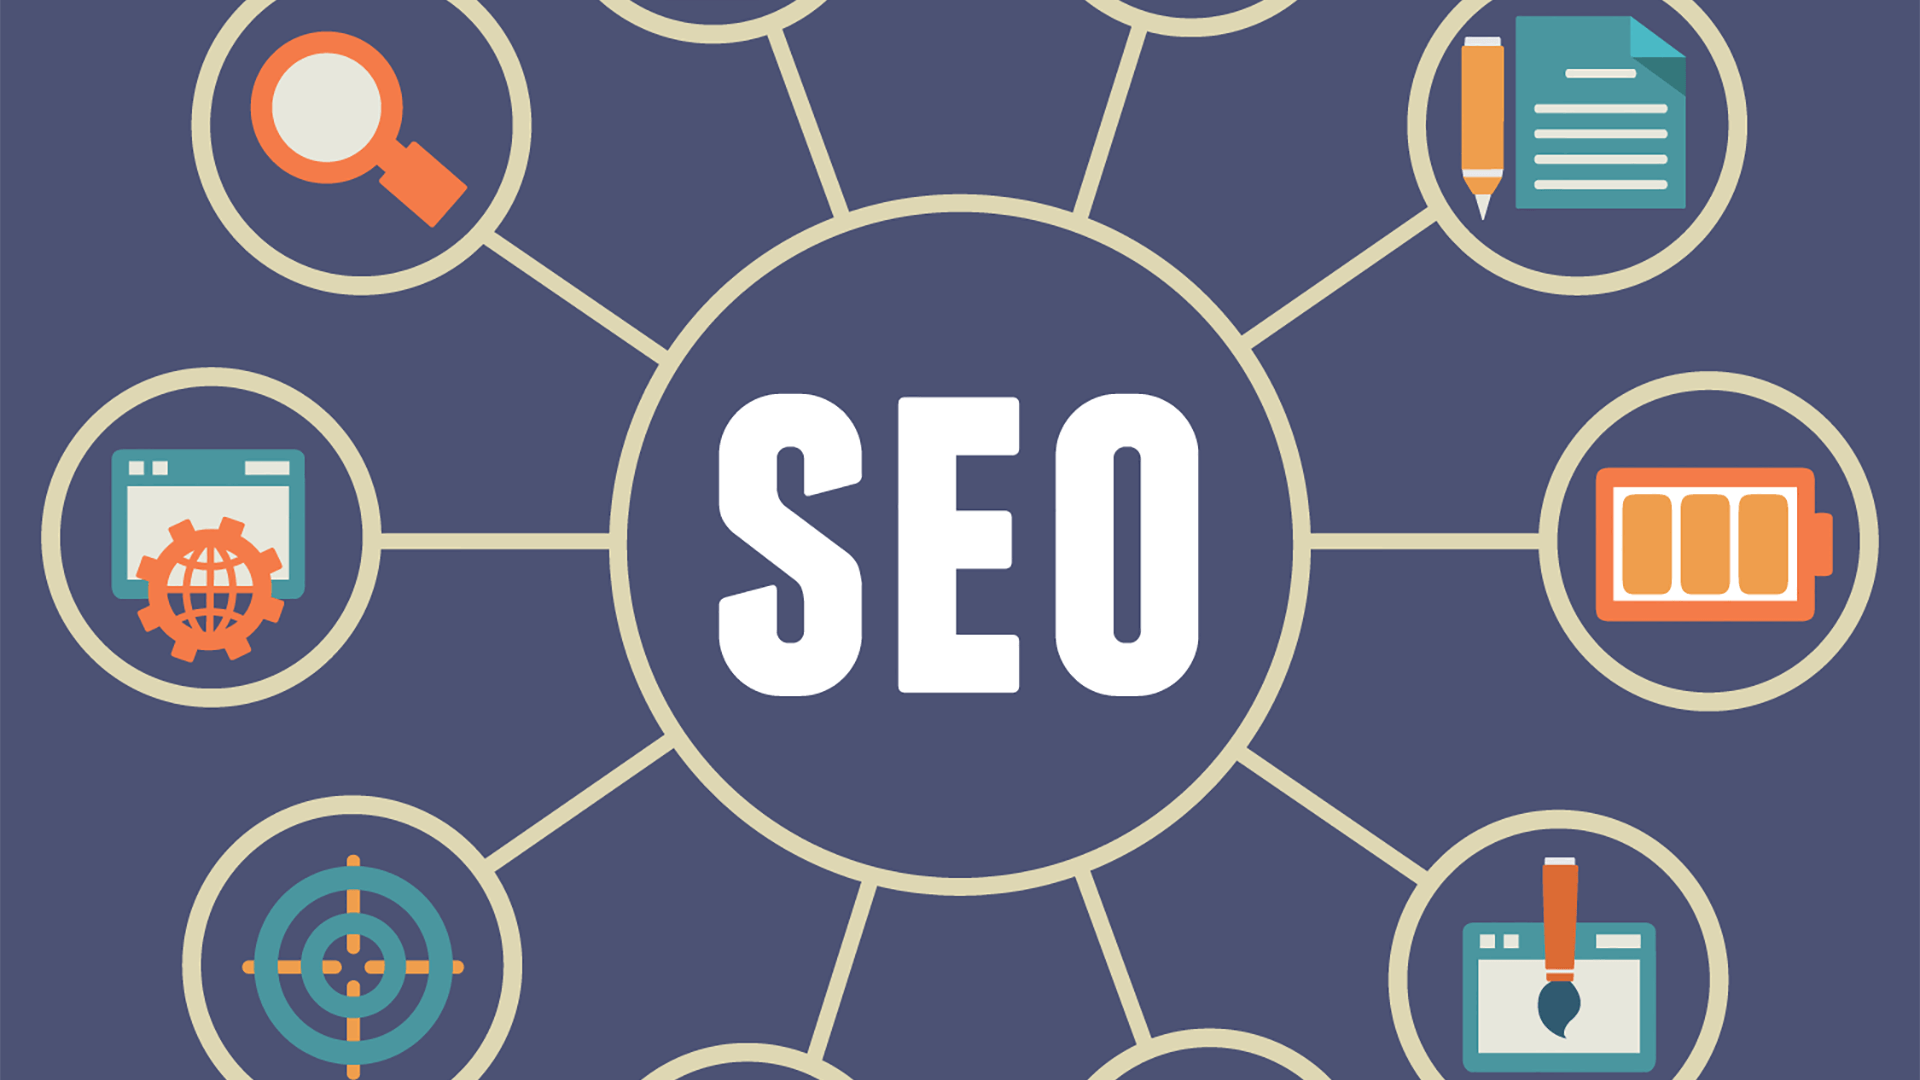 Whether to Choose Do SEO Yourself or Hire an SEO Company?